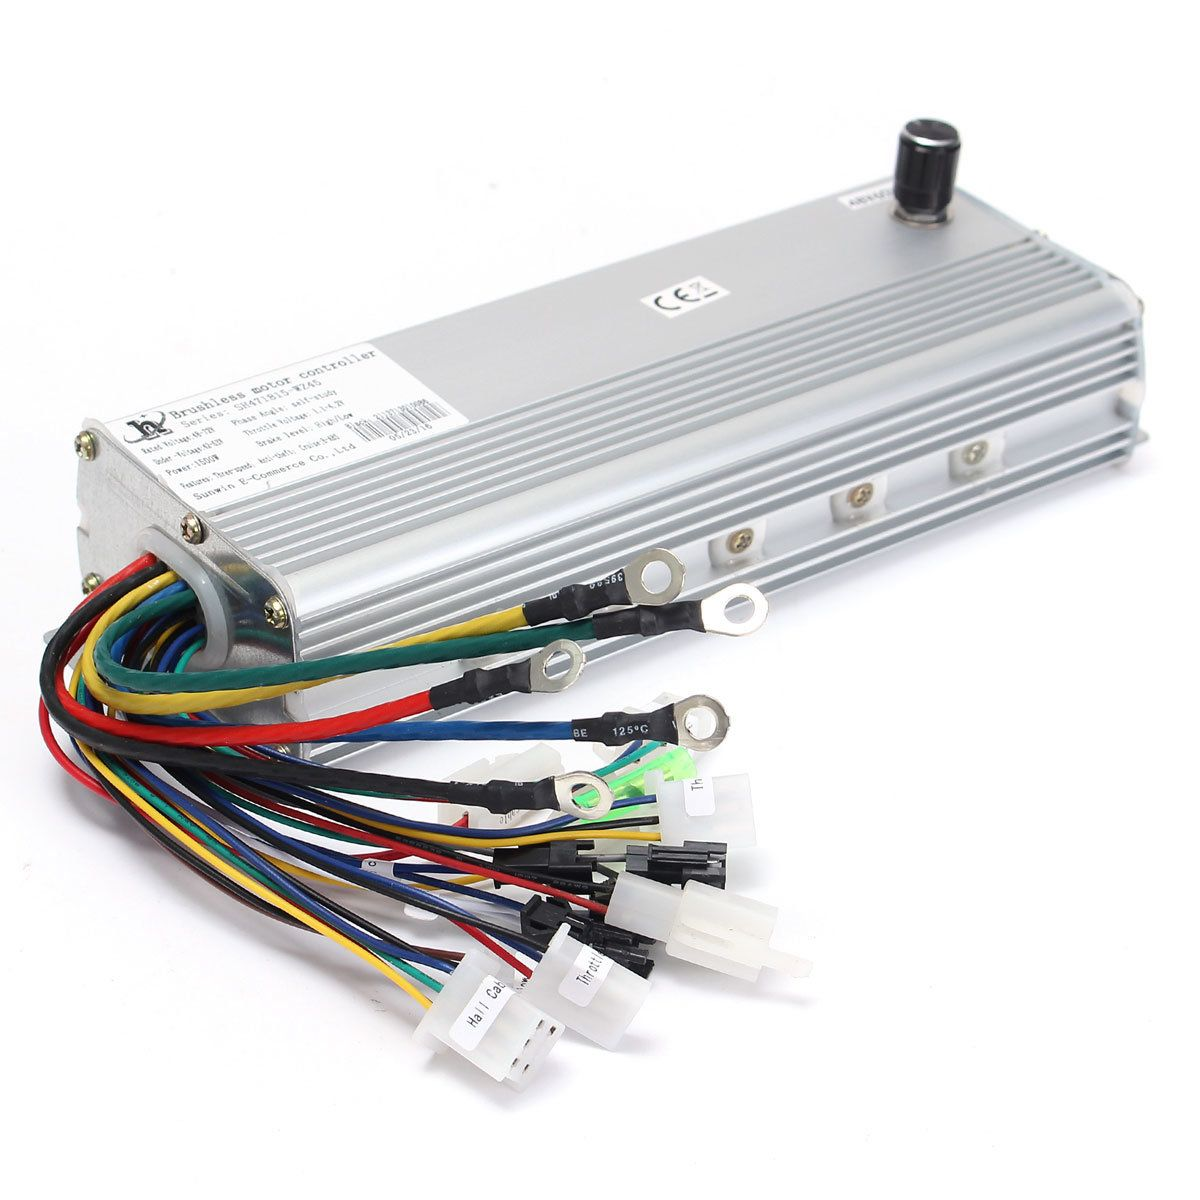 1500w 48v 72v Electric Scooter Brushless Motor Controller For E Bike Scooter Other Vehicle Parts Accessories From Automobiles Motorcycles On Banggood Com Electric Bicycle Electric Scooter Scooter